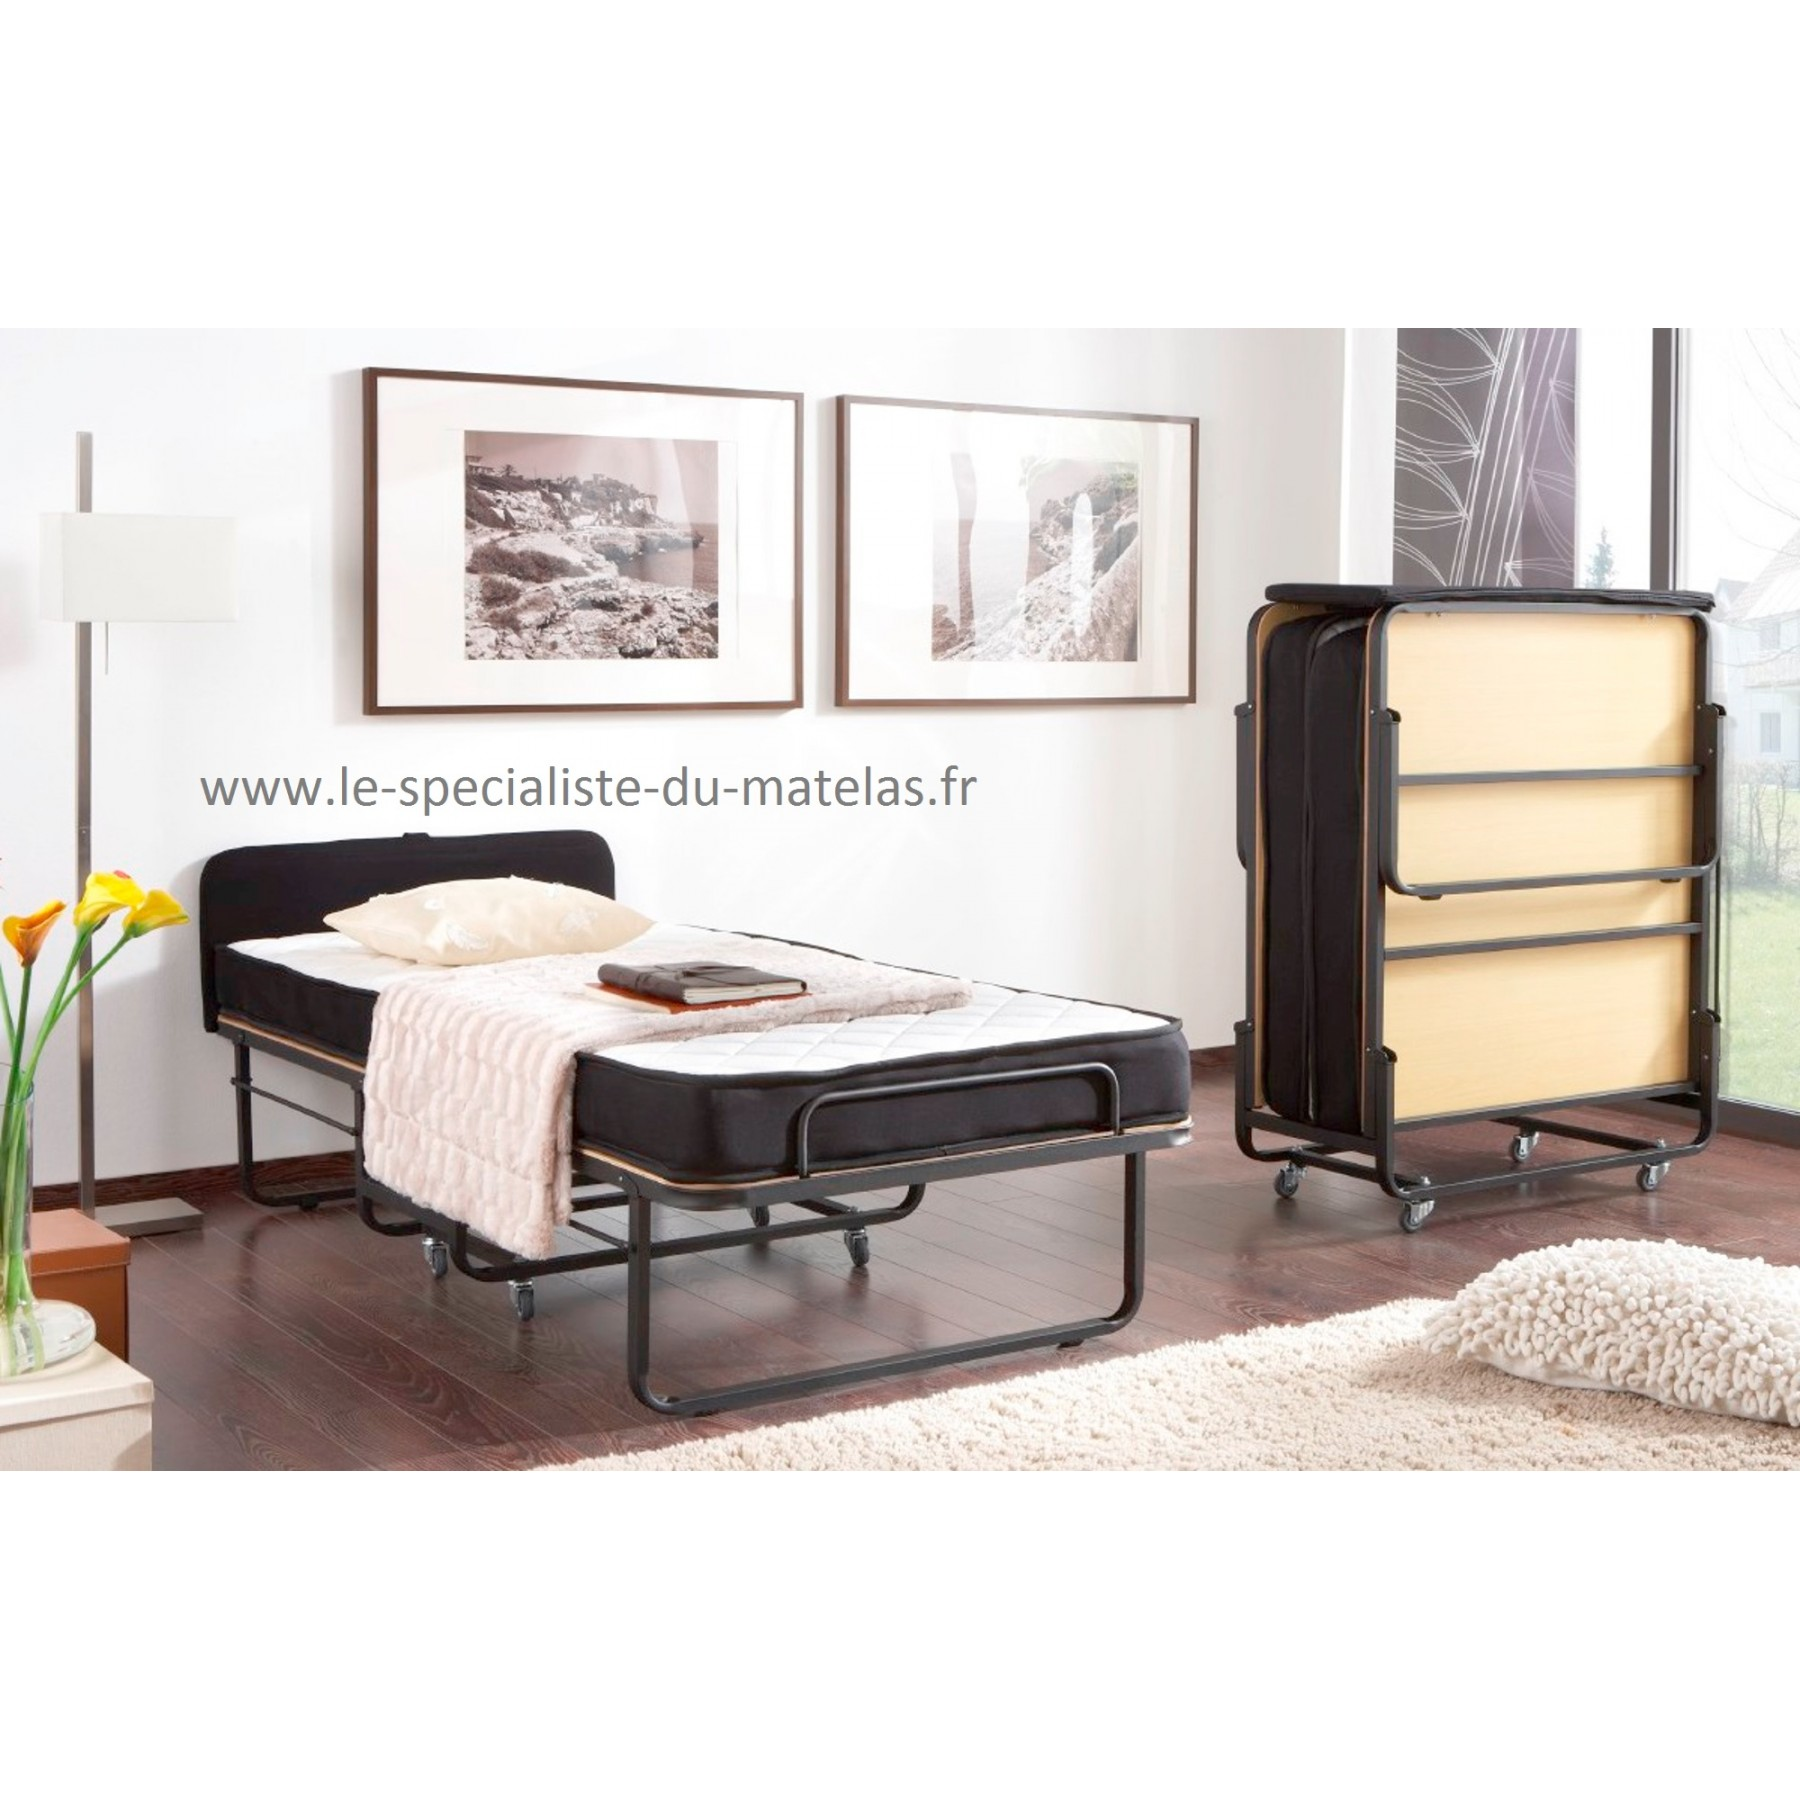 lit pliant avec t te de lit d couvrir au le sp cialiste. Black Bedroom Furniture Sets. Home Design Ideas